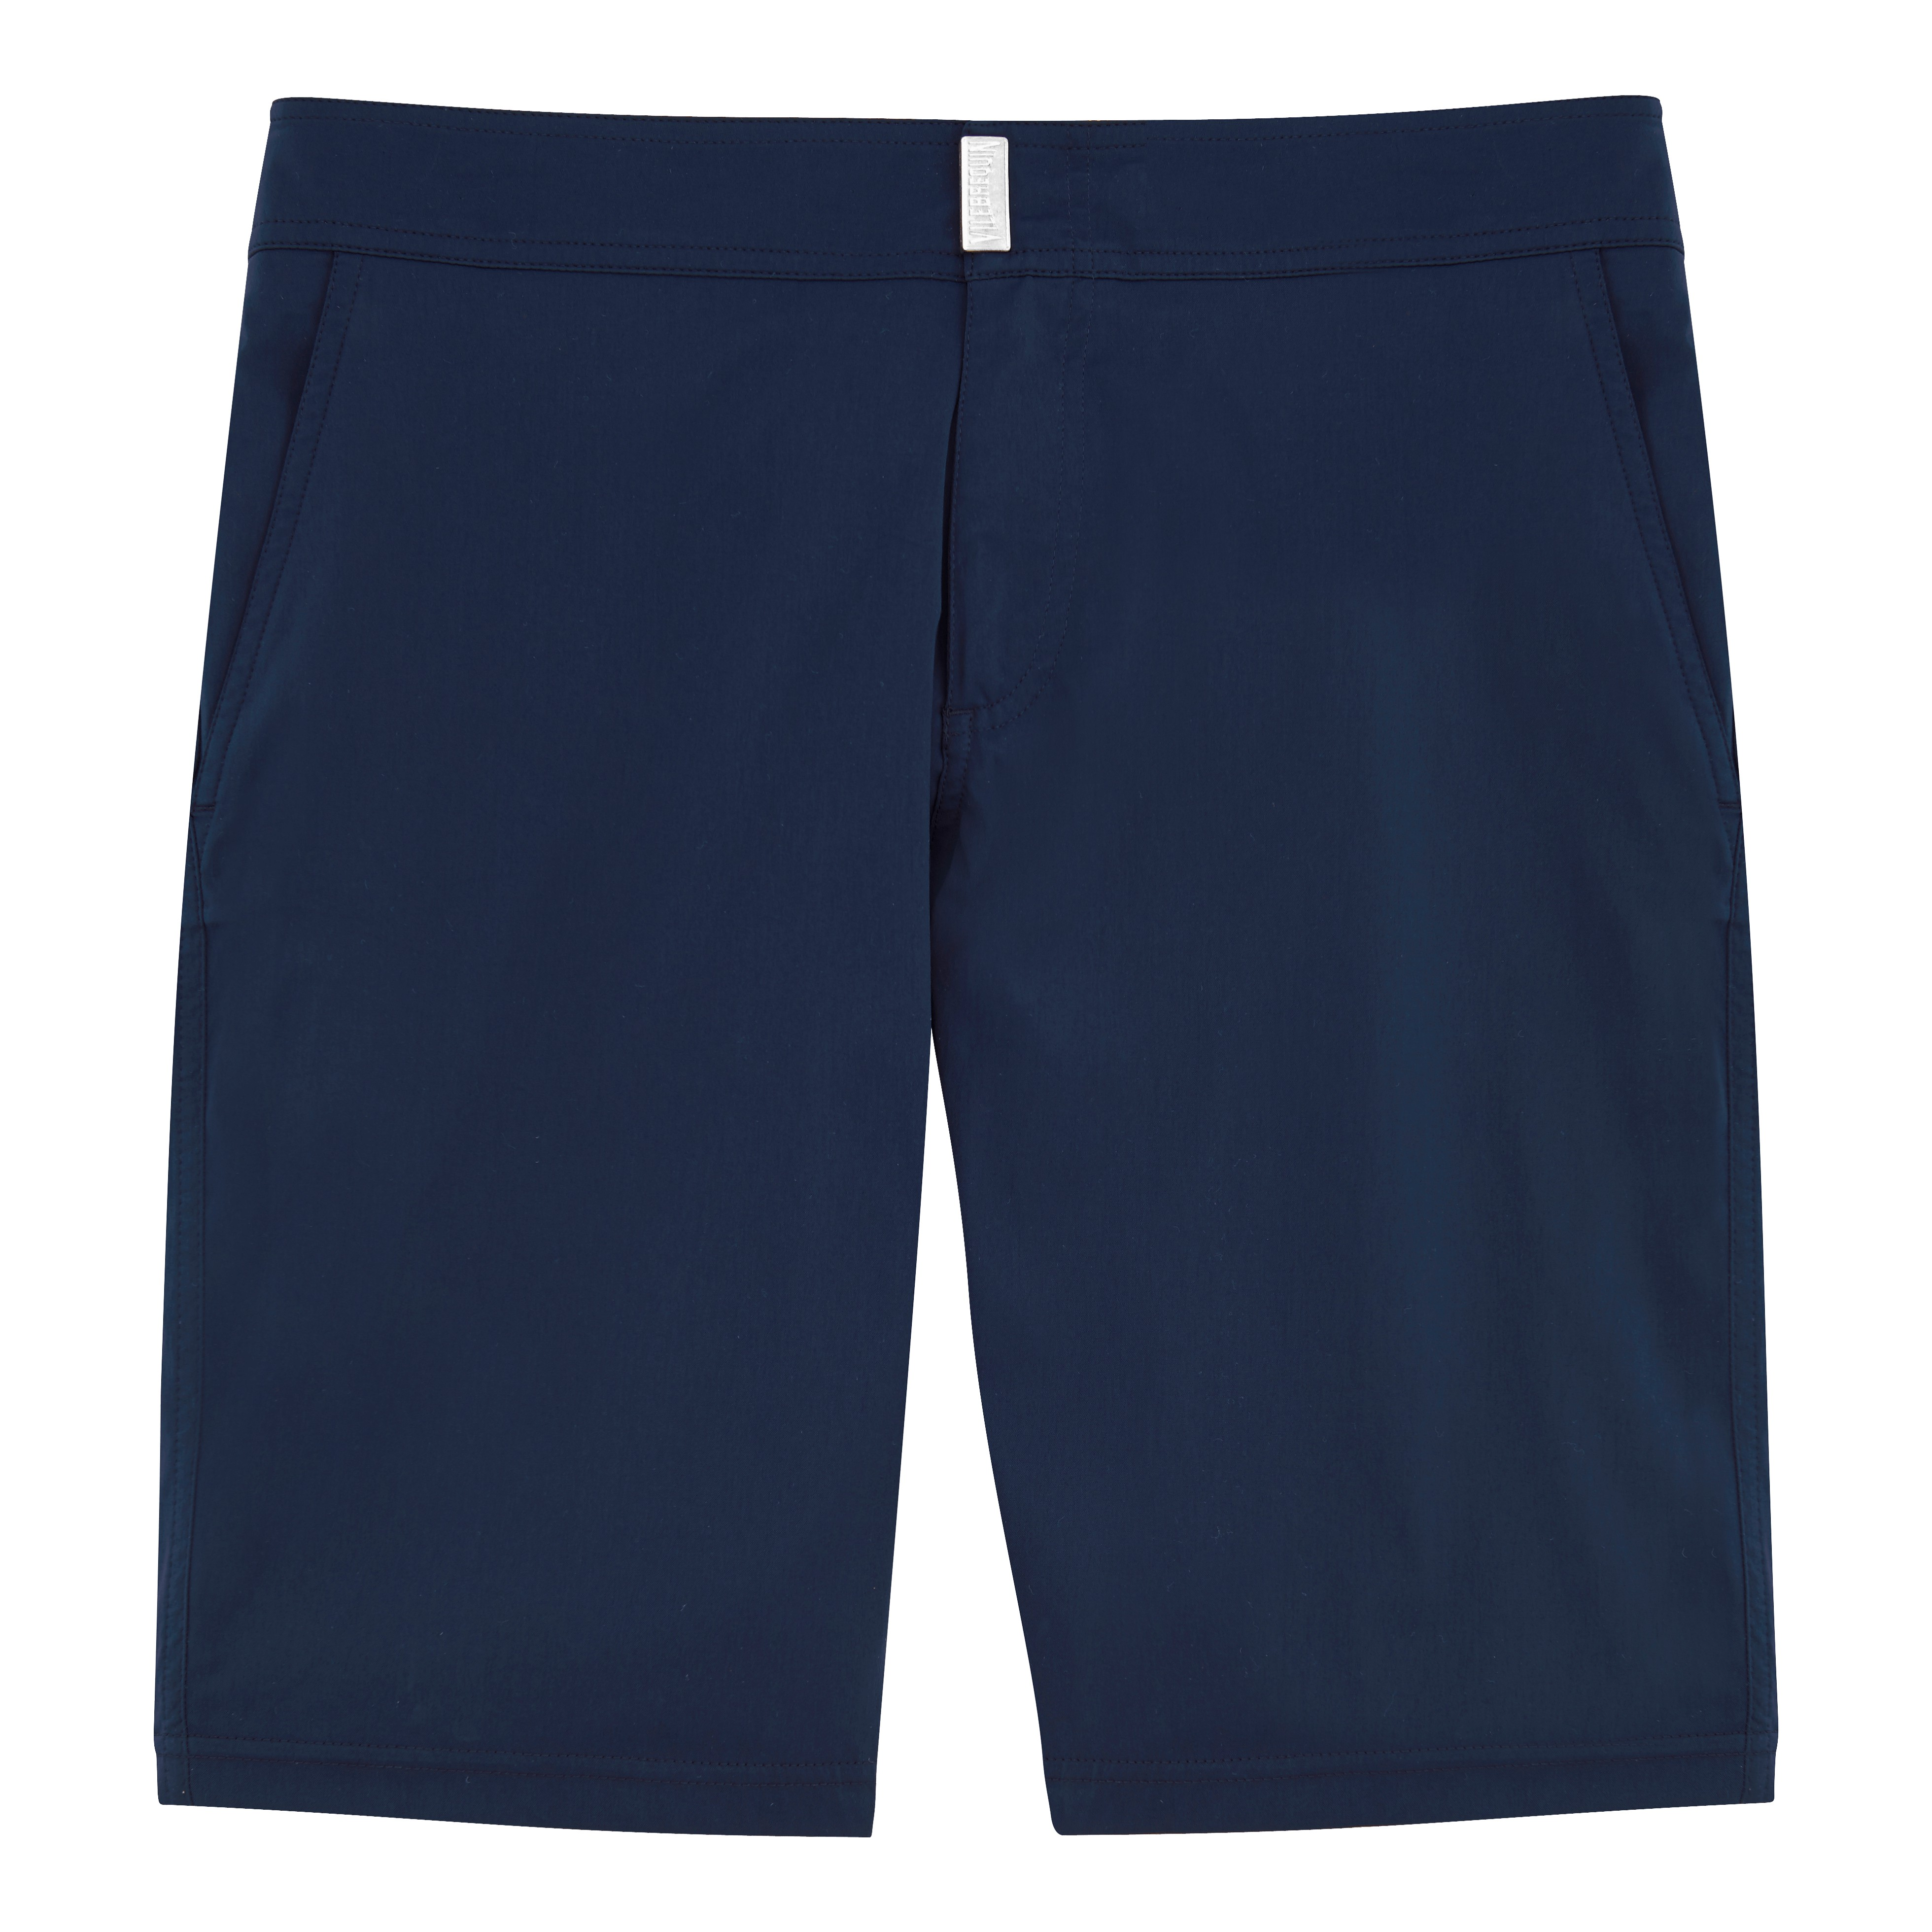 VILEBREQUIN Solid Superflex Long Fitted Cut Swim Shorts, Meia - Navy